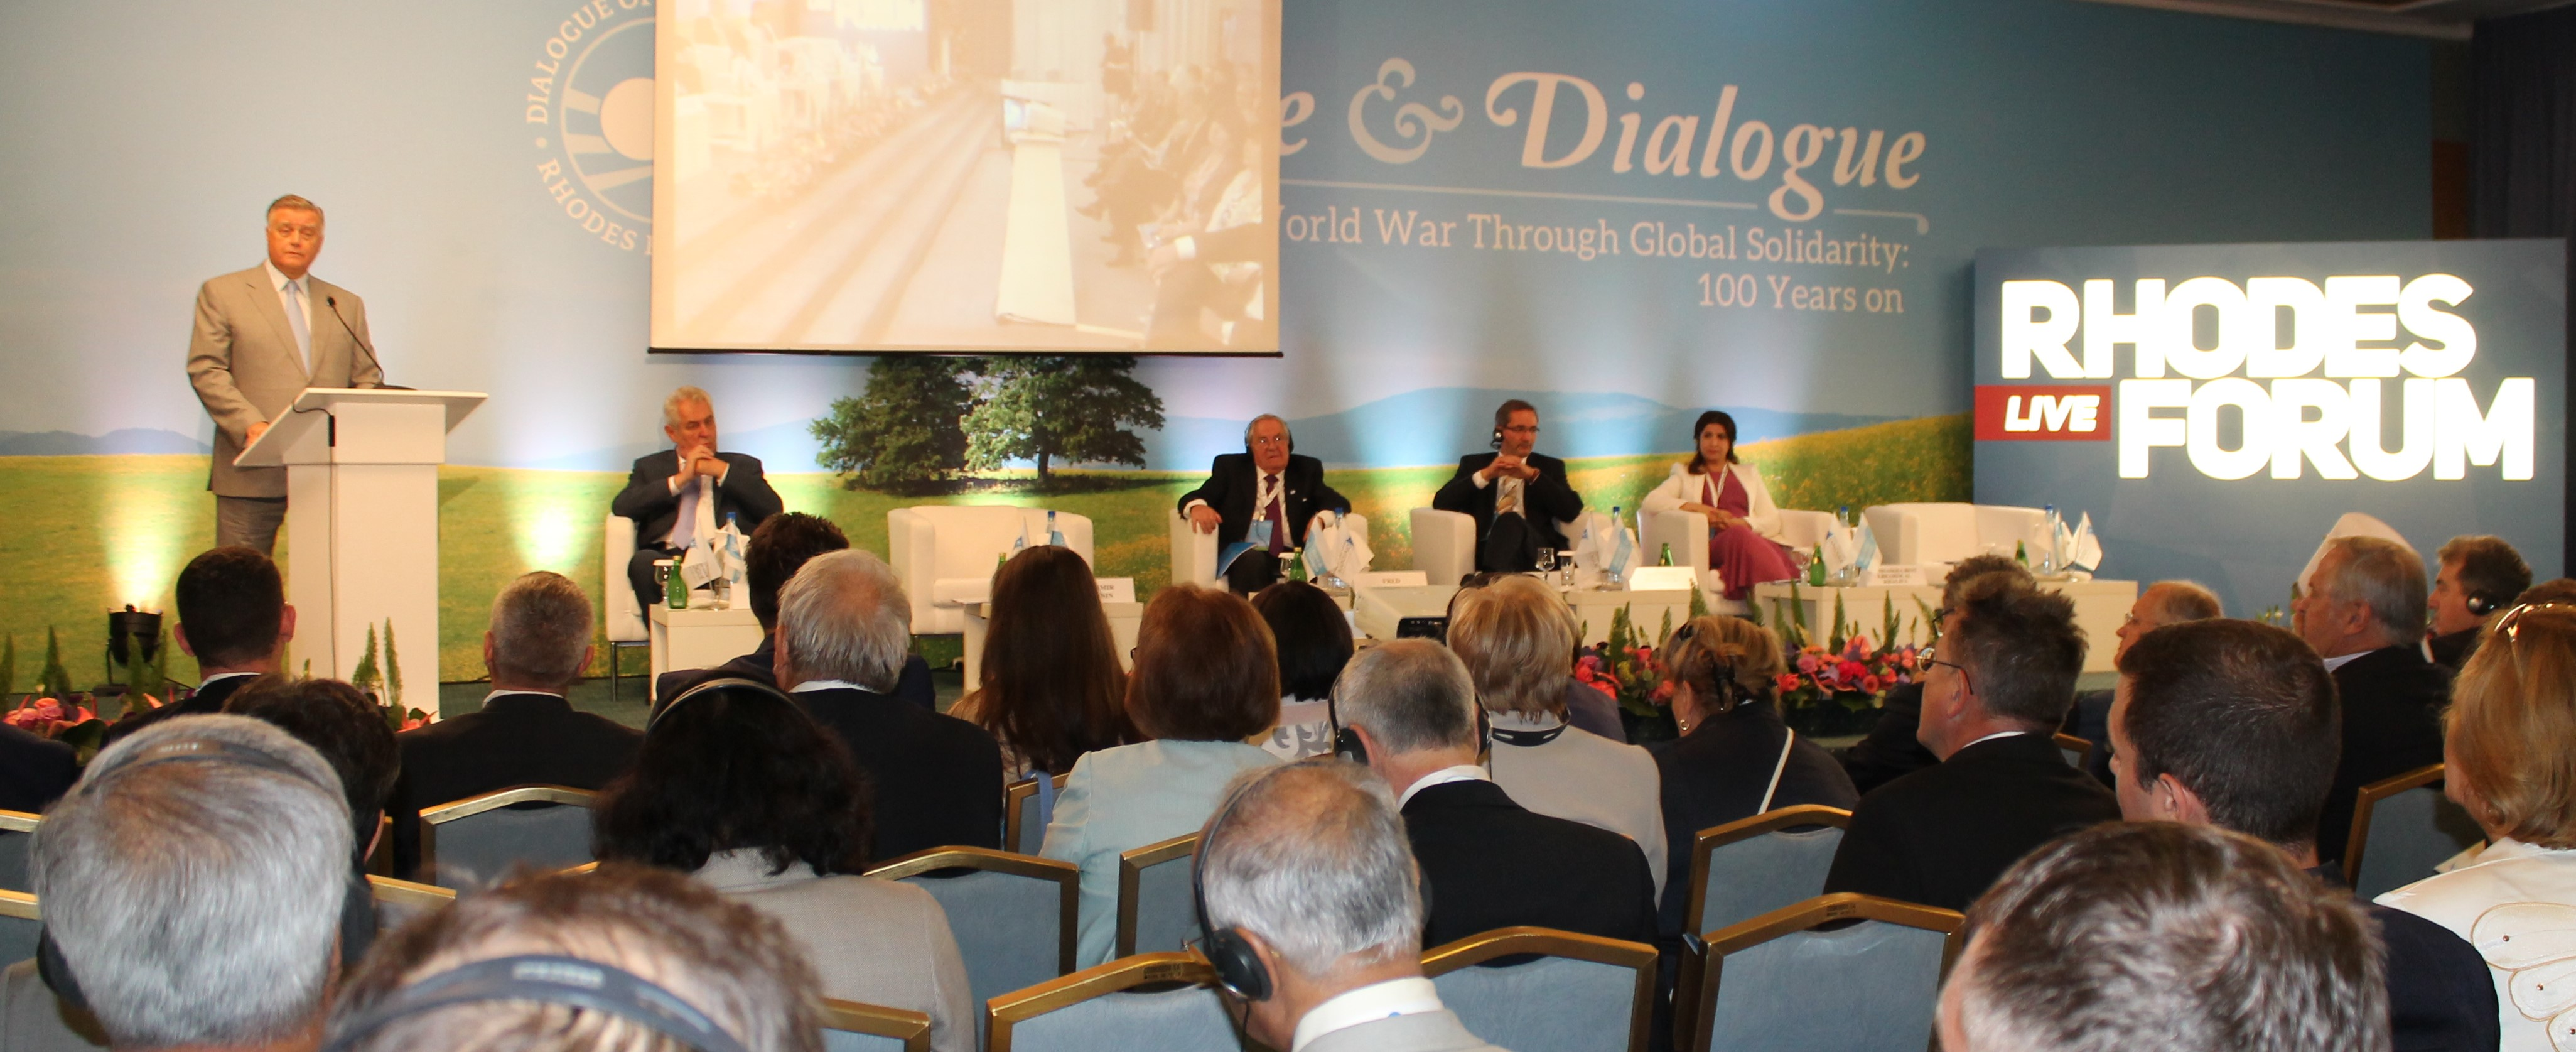 Preventing World War Through Global Solidarity: 100 years on – Rhodes Forum-2014 started its work